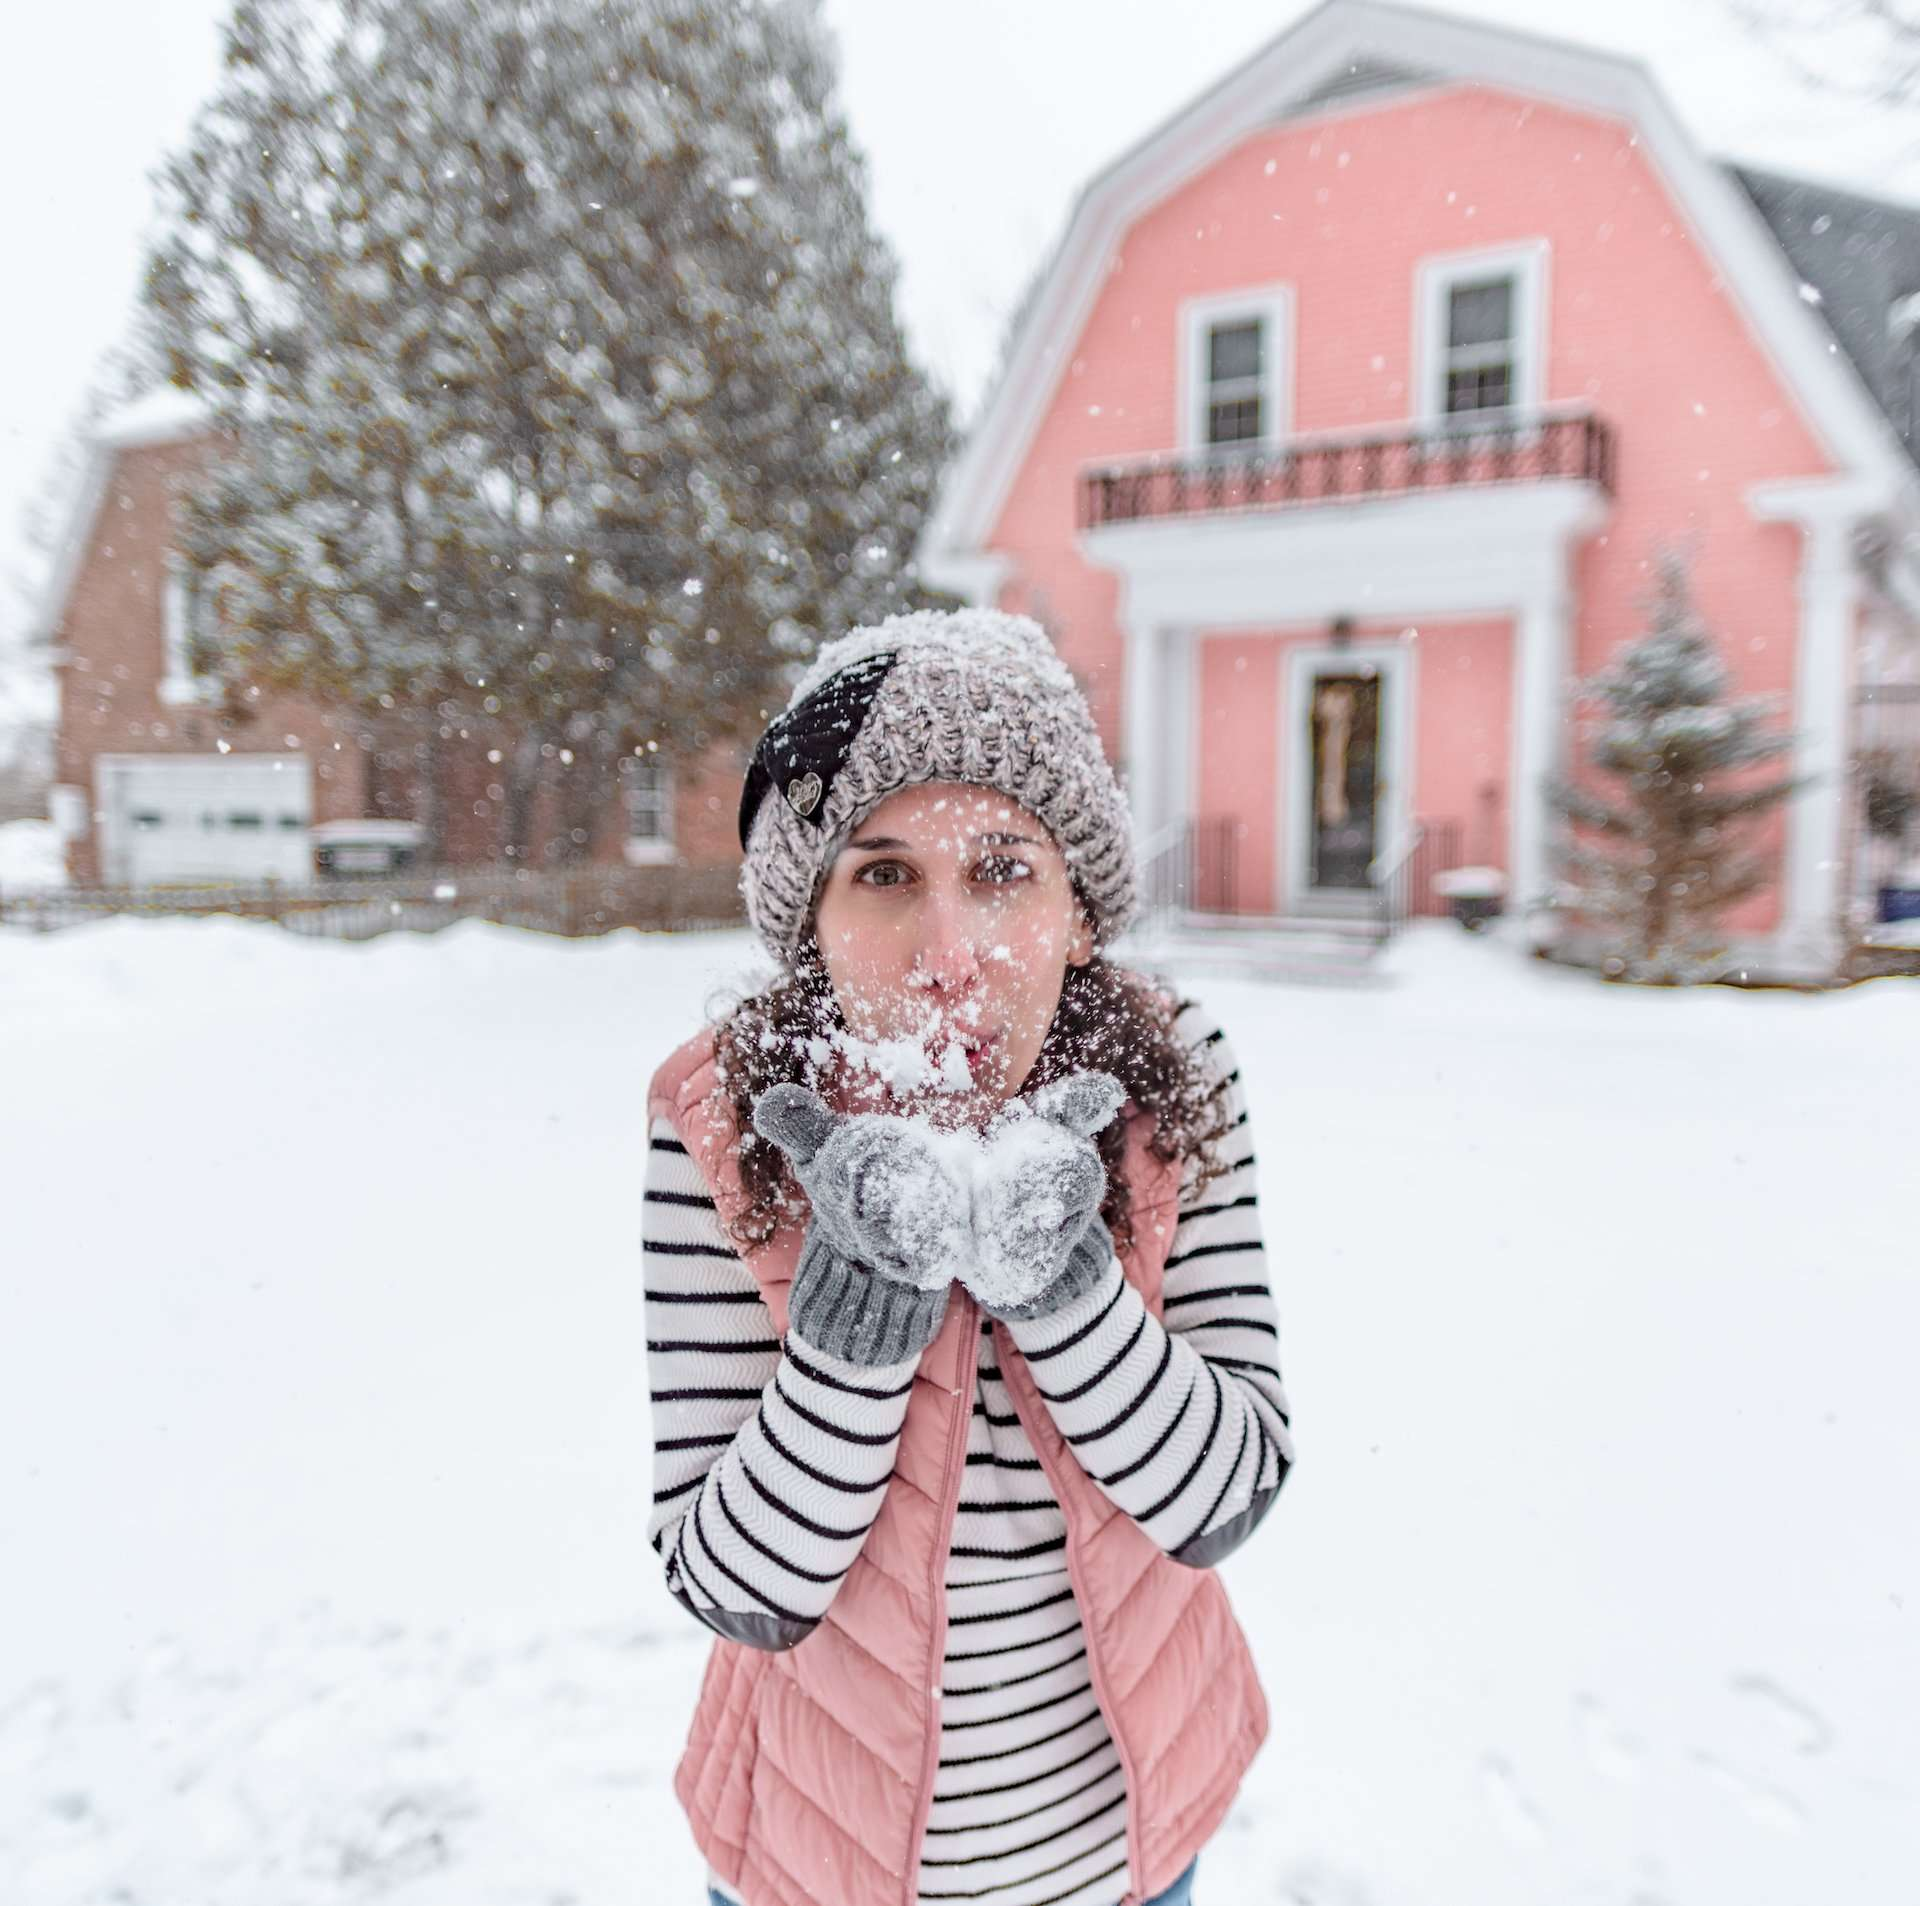 Snow day fun on Mountain Ave in Woodstock, Vermont